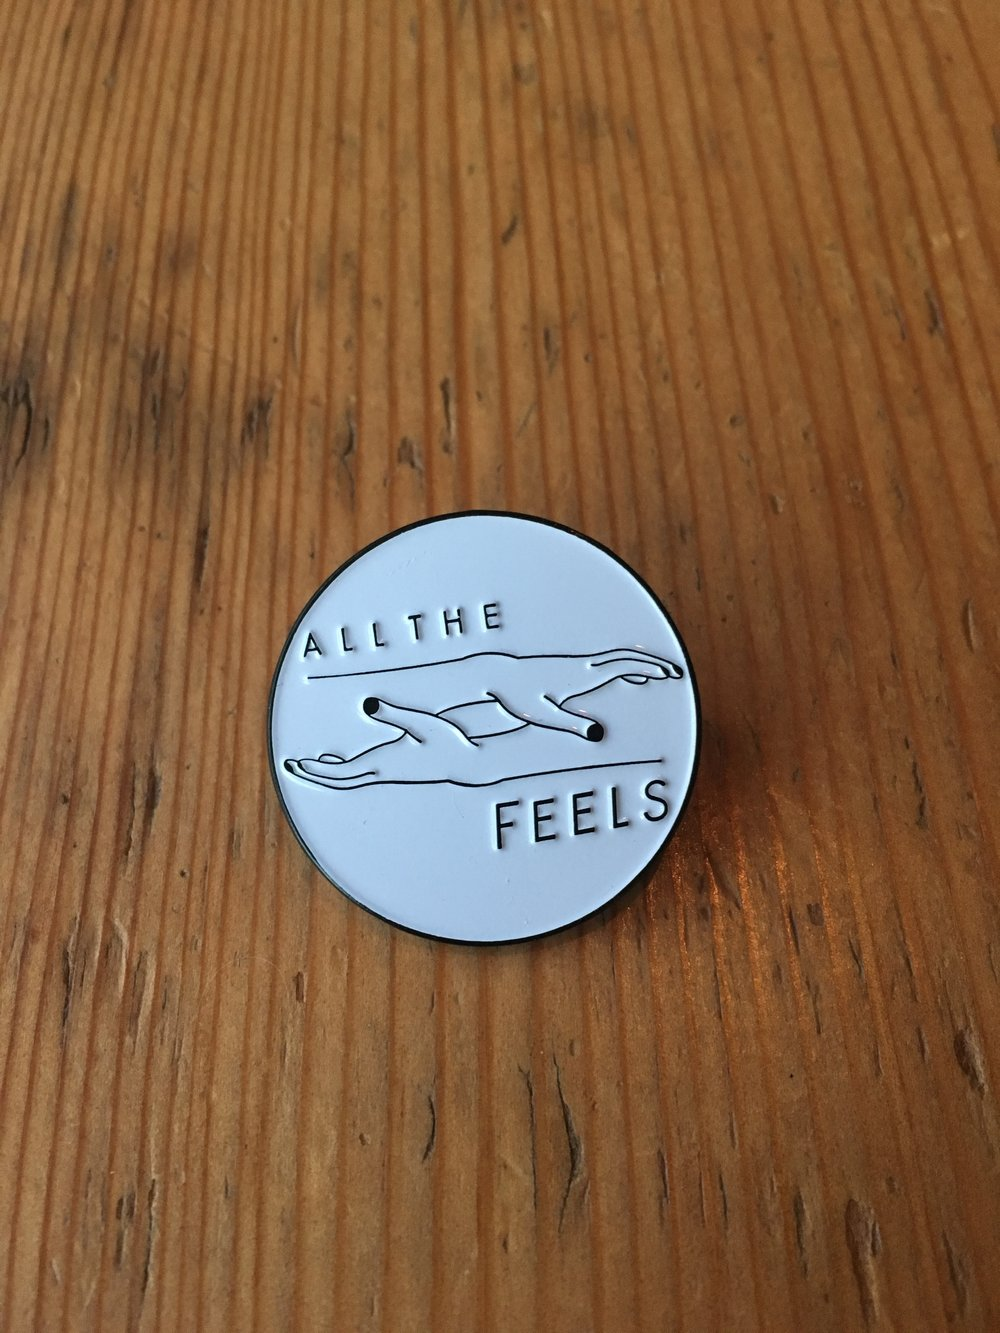 you can pick up a pin  here .